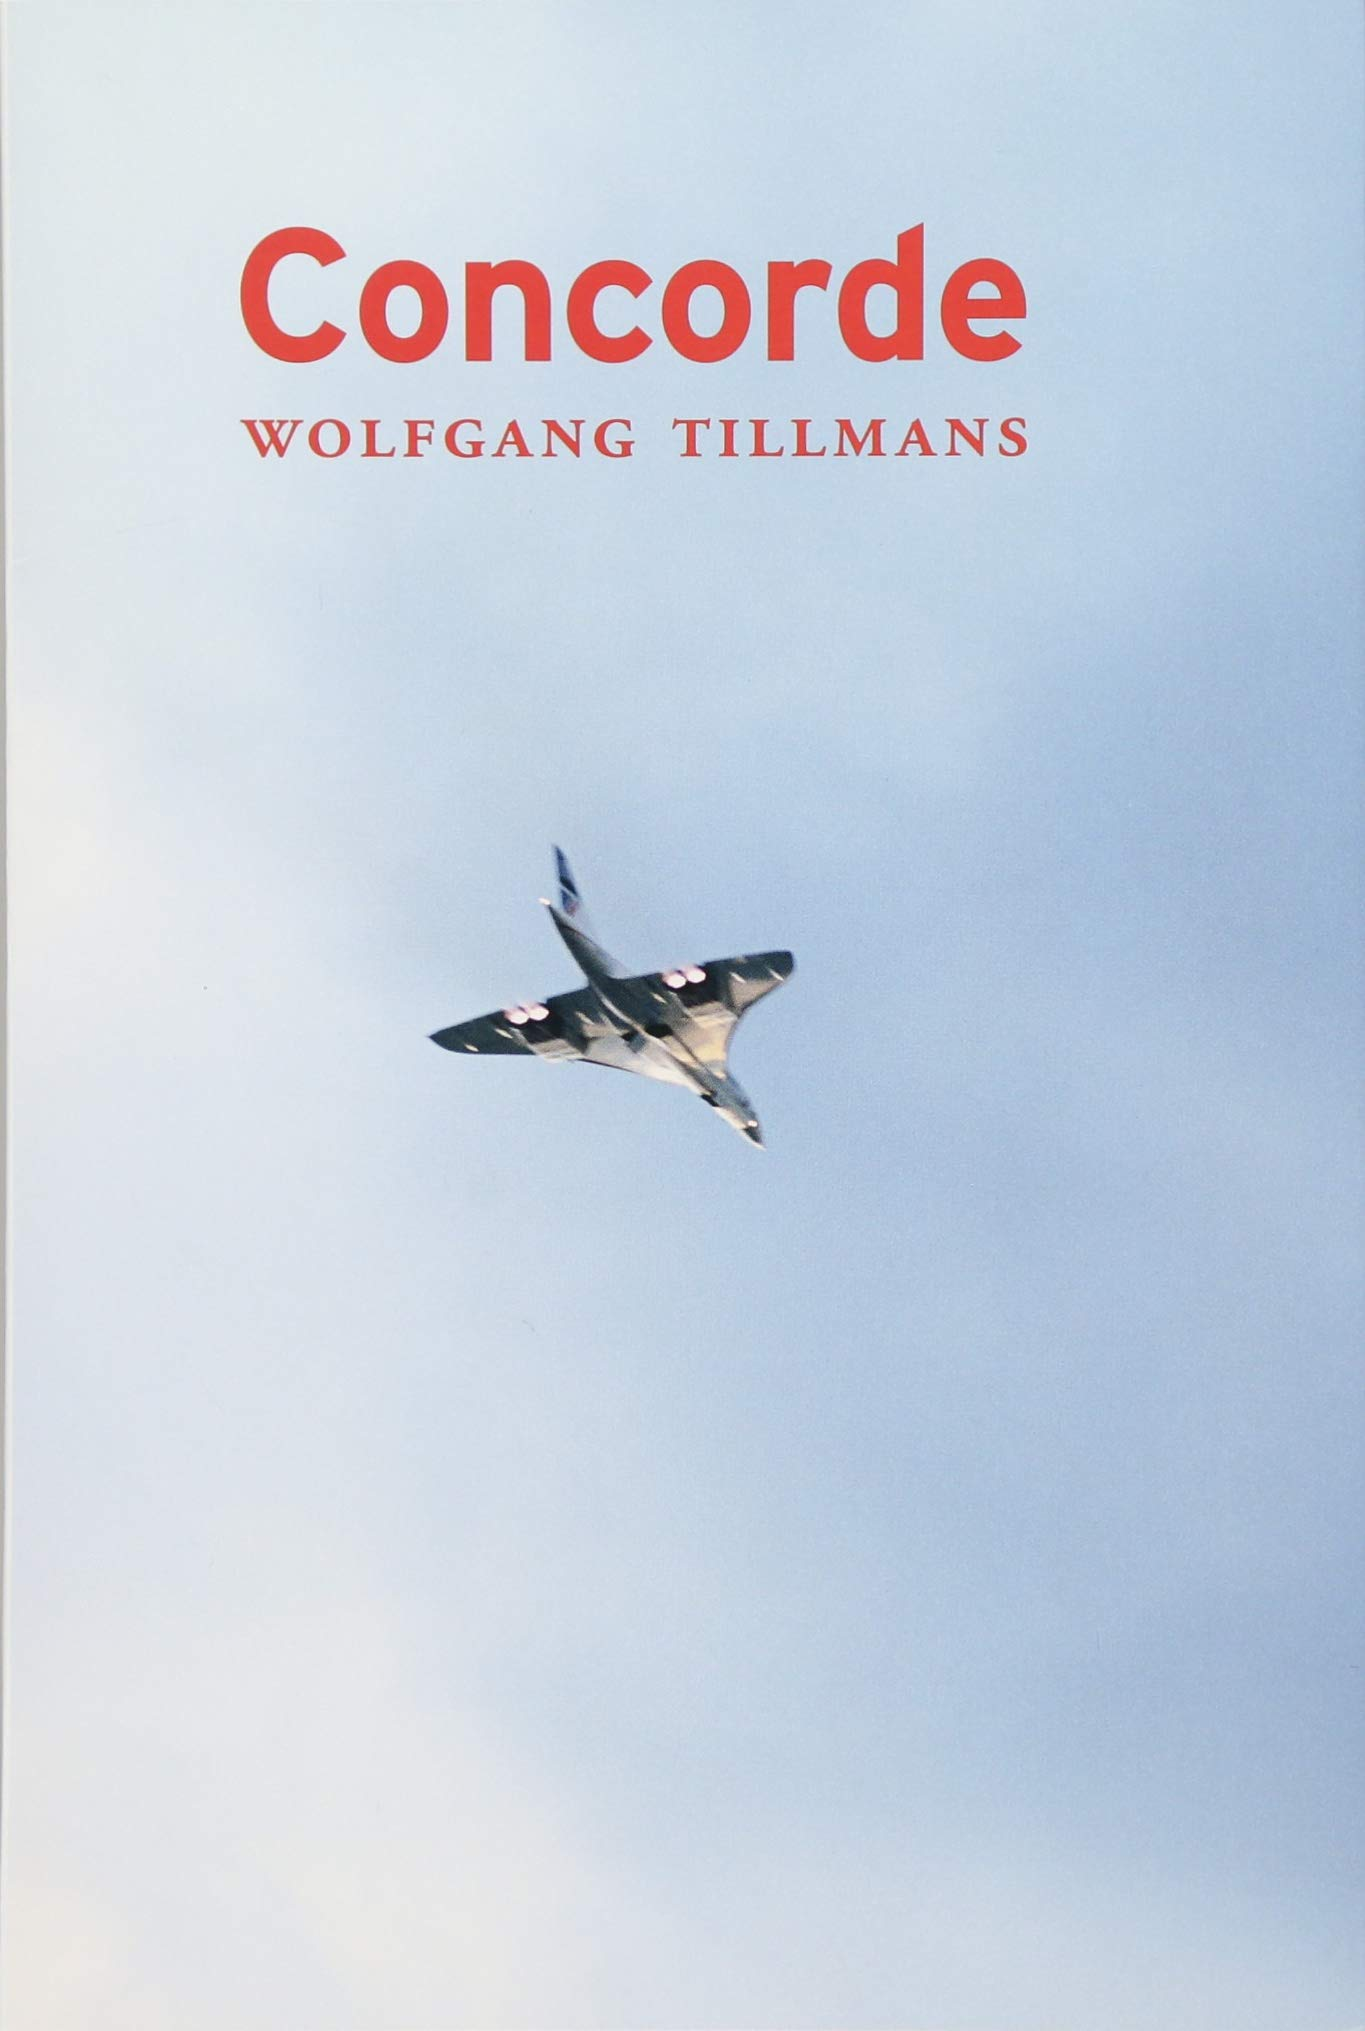 Wolfgang Tillmans. Concorde: First published 1997, fifth edition 2017